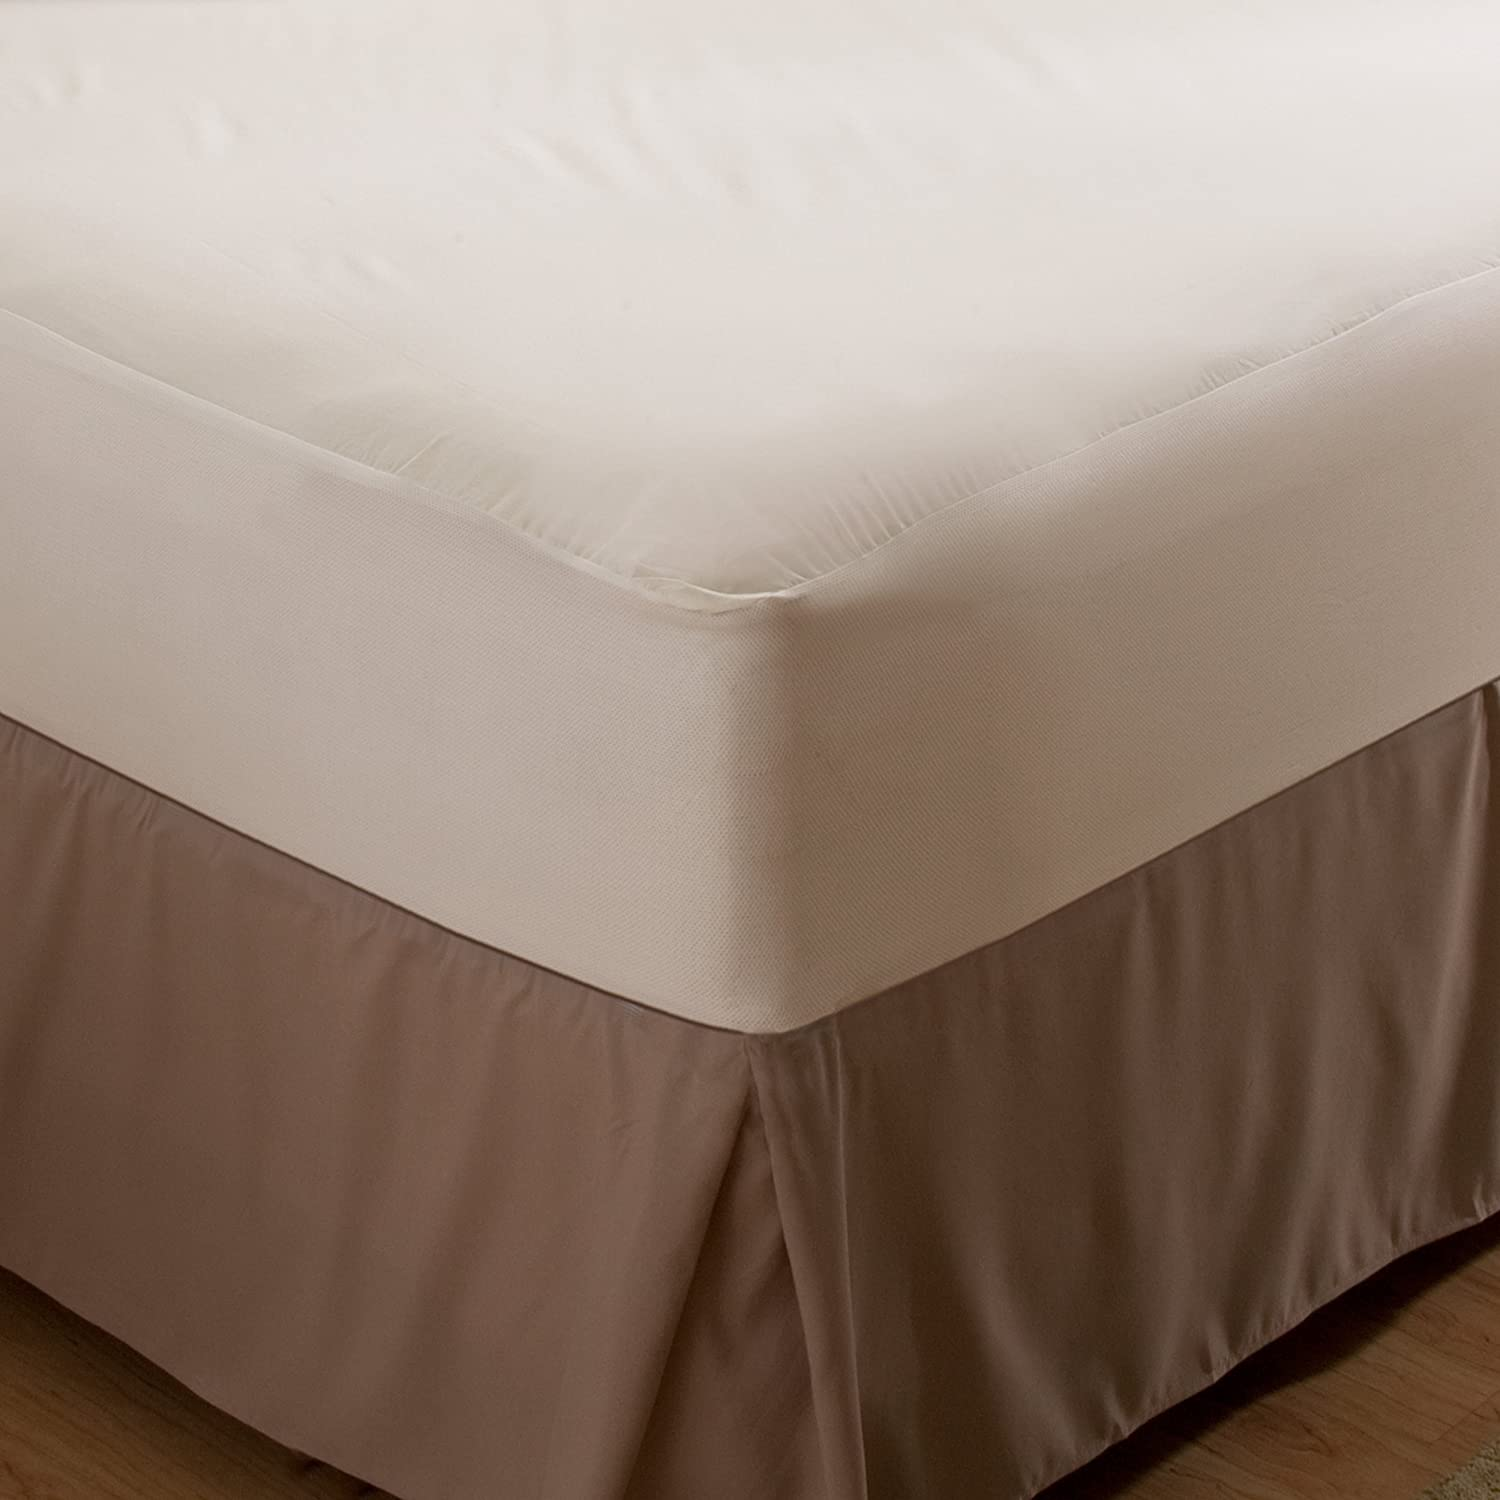 Organic Bedroom Furniture Amazoncom Aller Ease Naturals Organic Cotton Allergy Protection